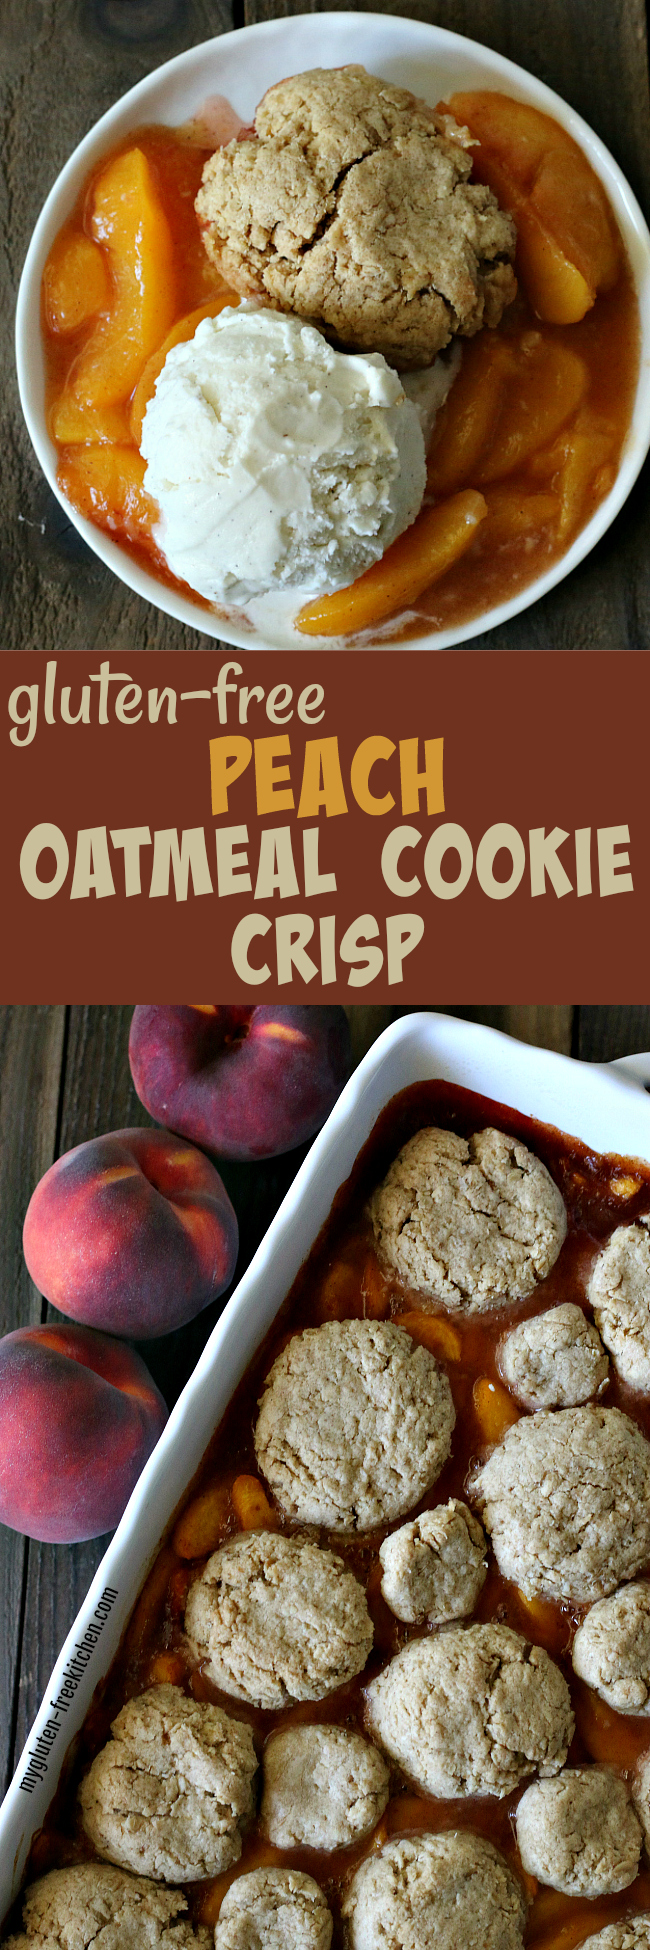 Gluten-free Peach Oatmeal Cookie Crisp Recipe with dairy-free option